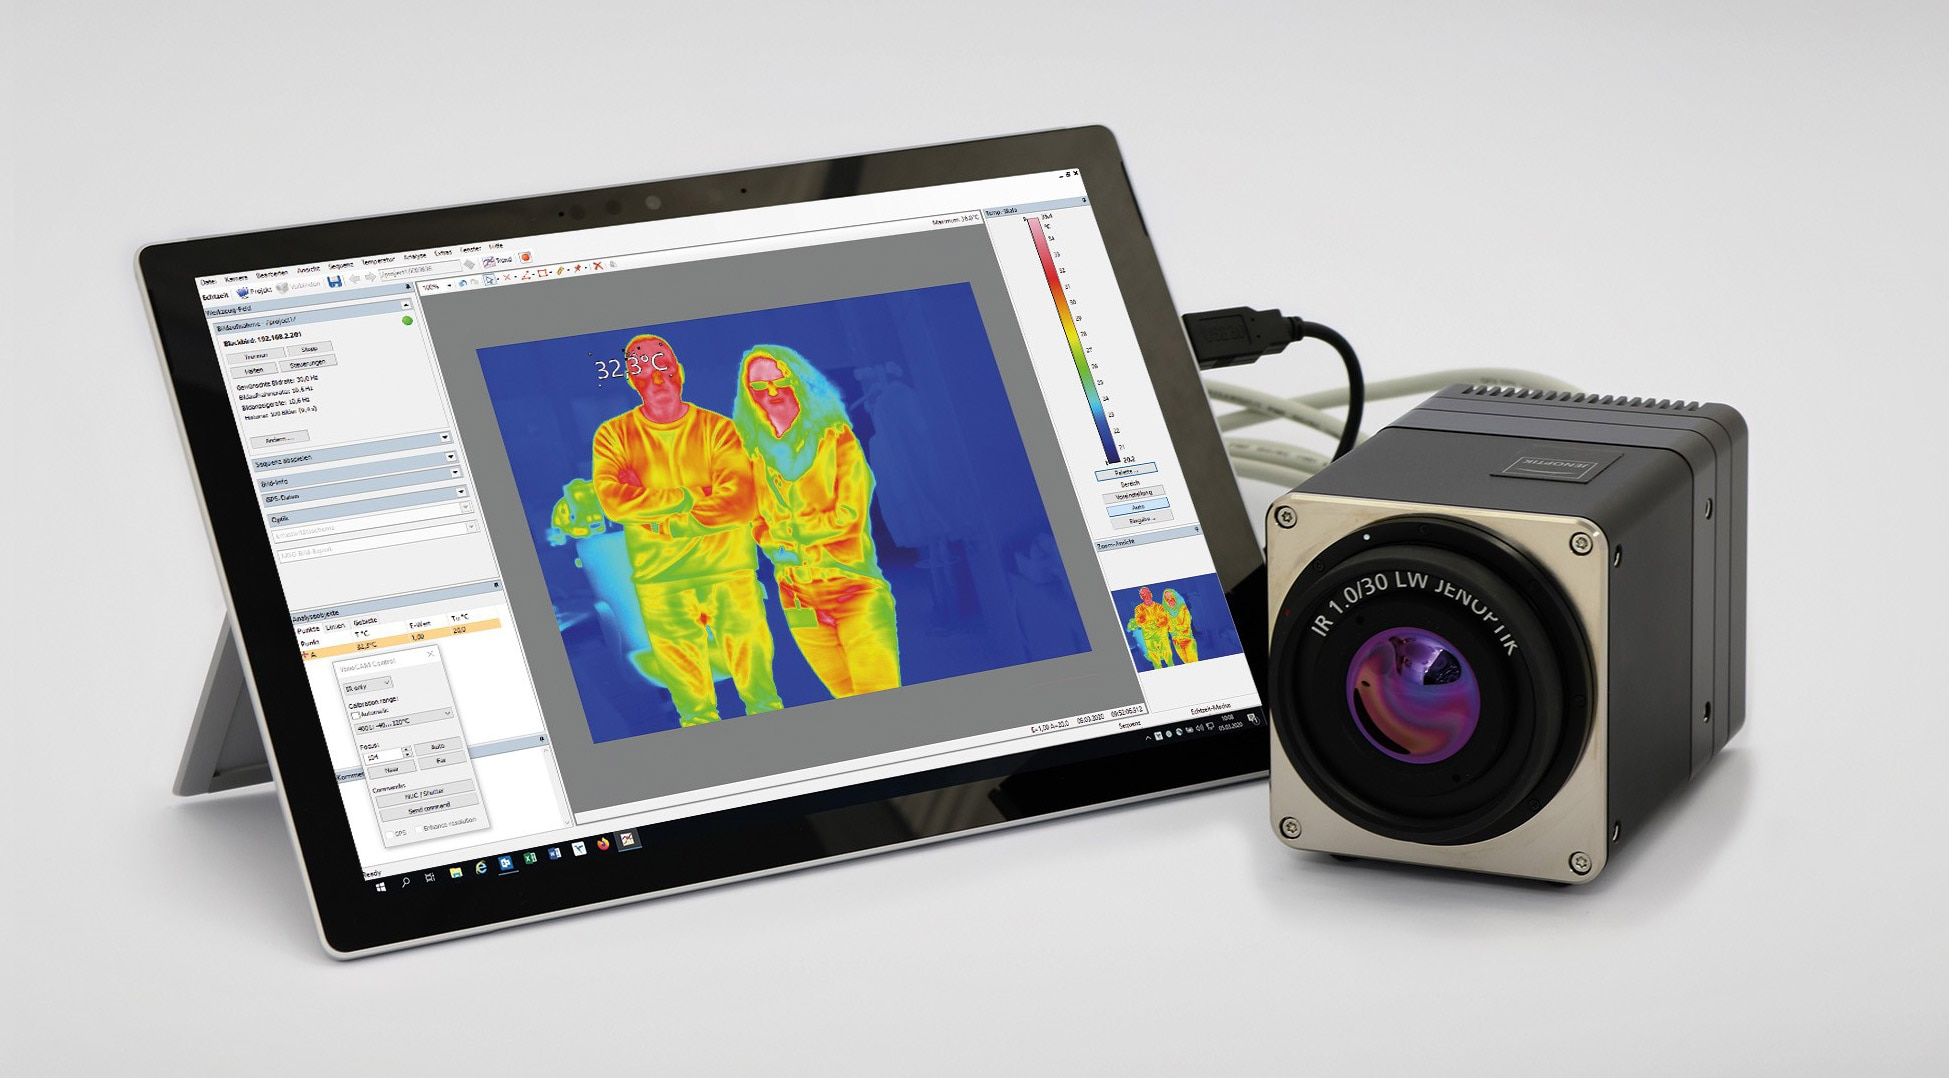 thermal imaging camera and tablet